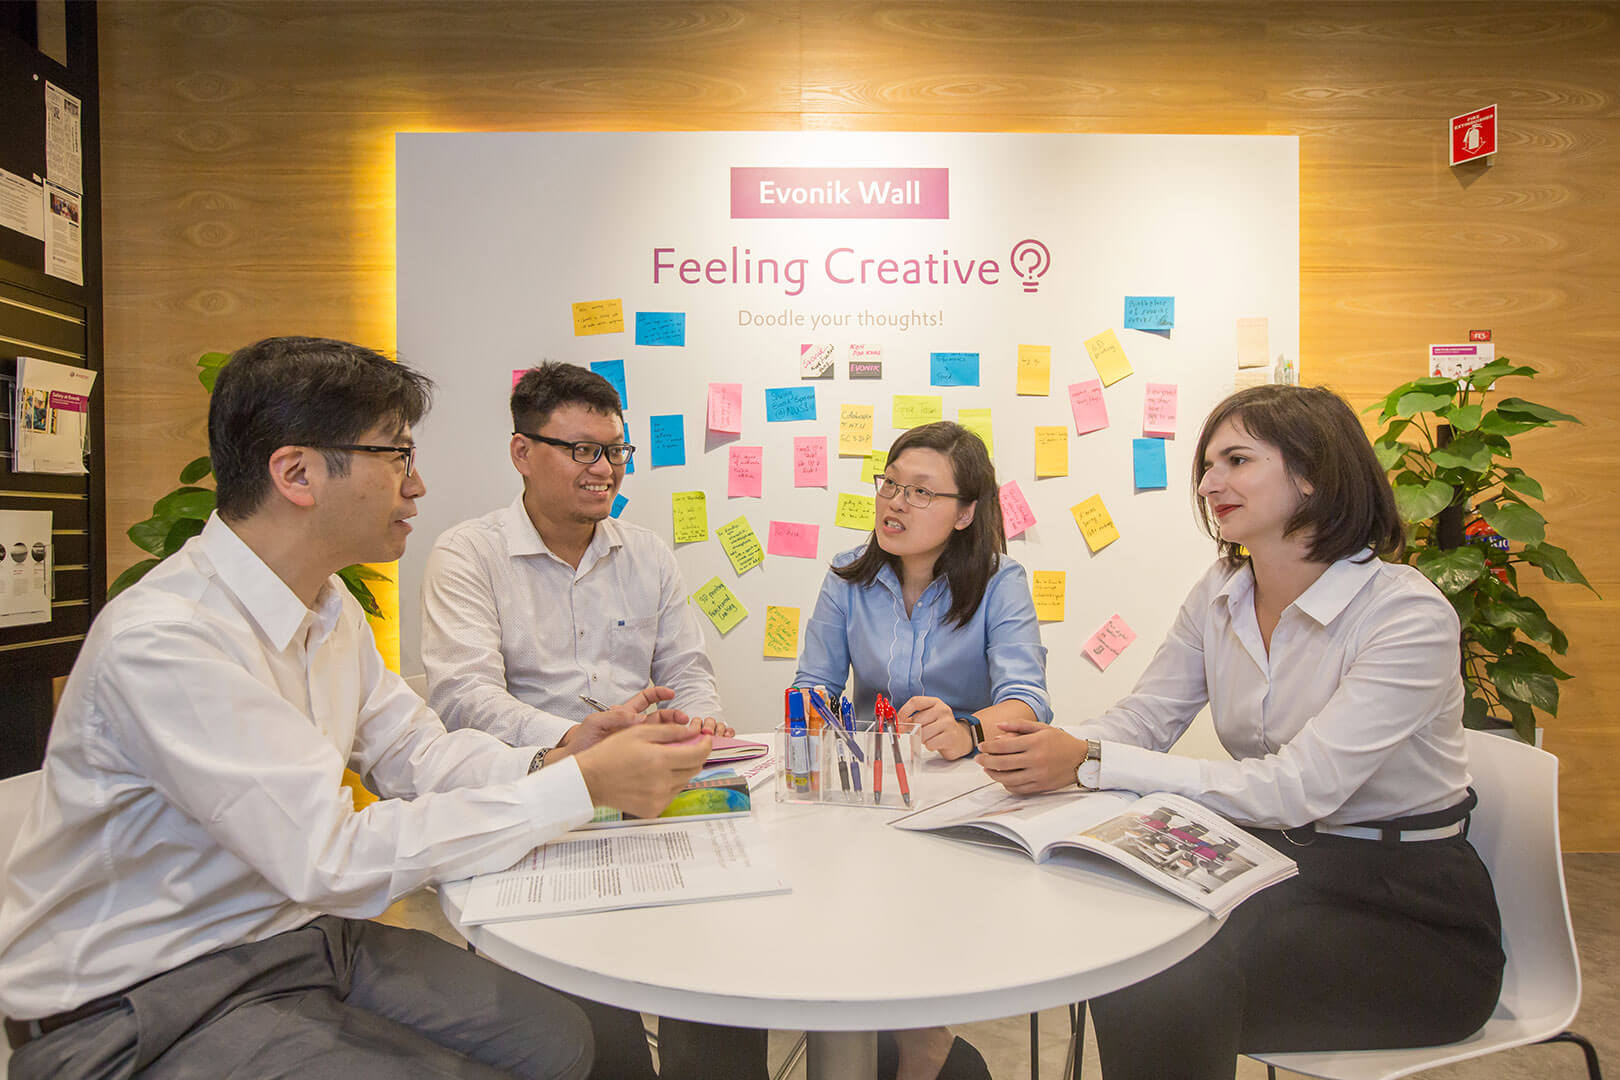 Employees of Evonik sit at the table